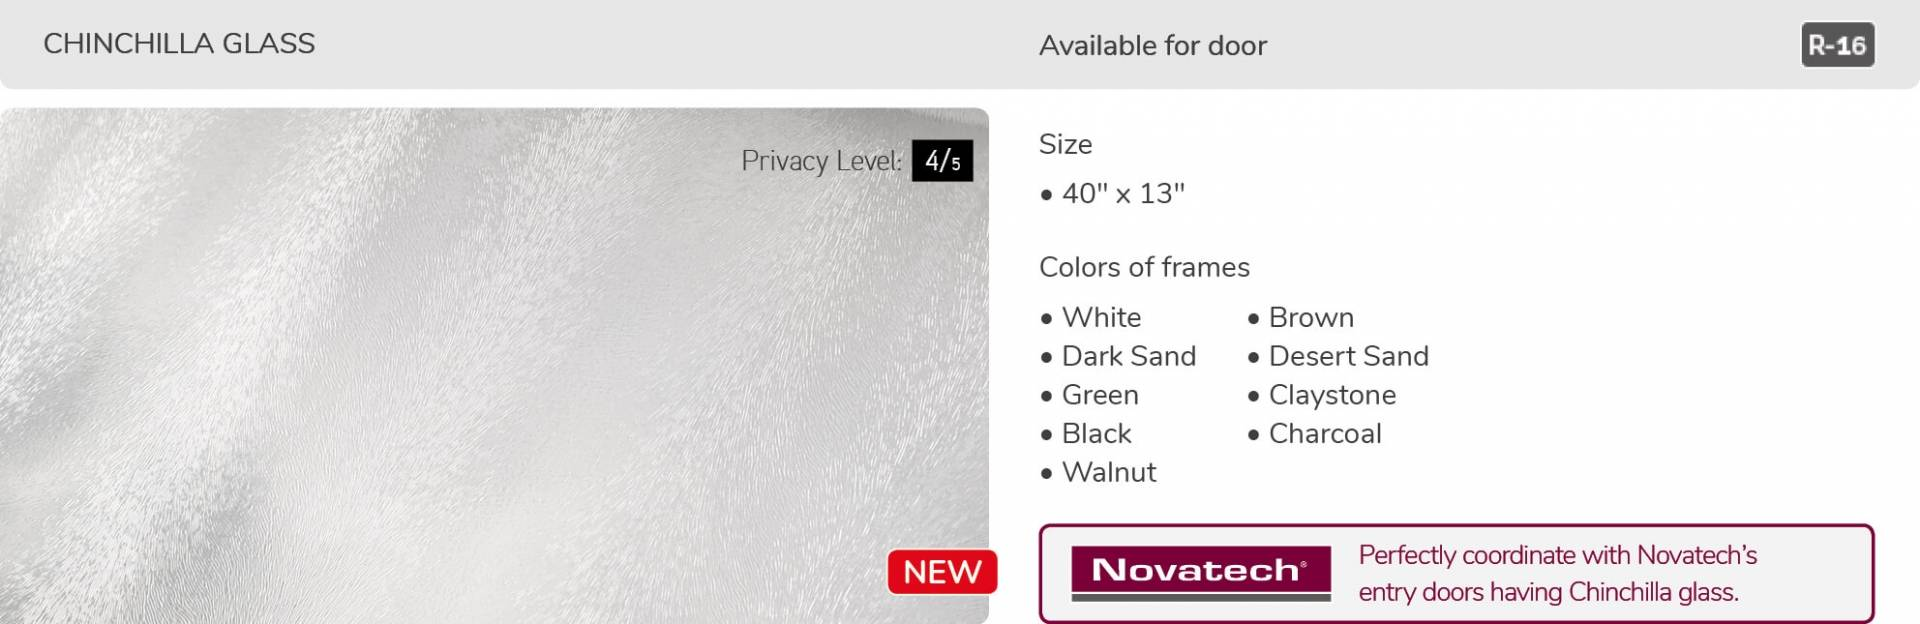 Chinchilla glass, 40' x 13', available for door R-16